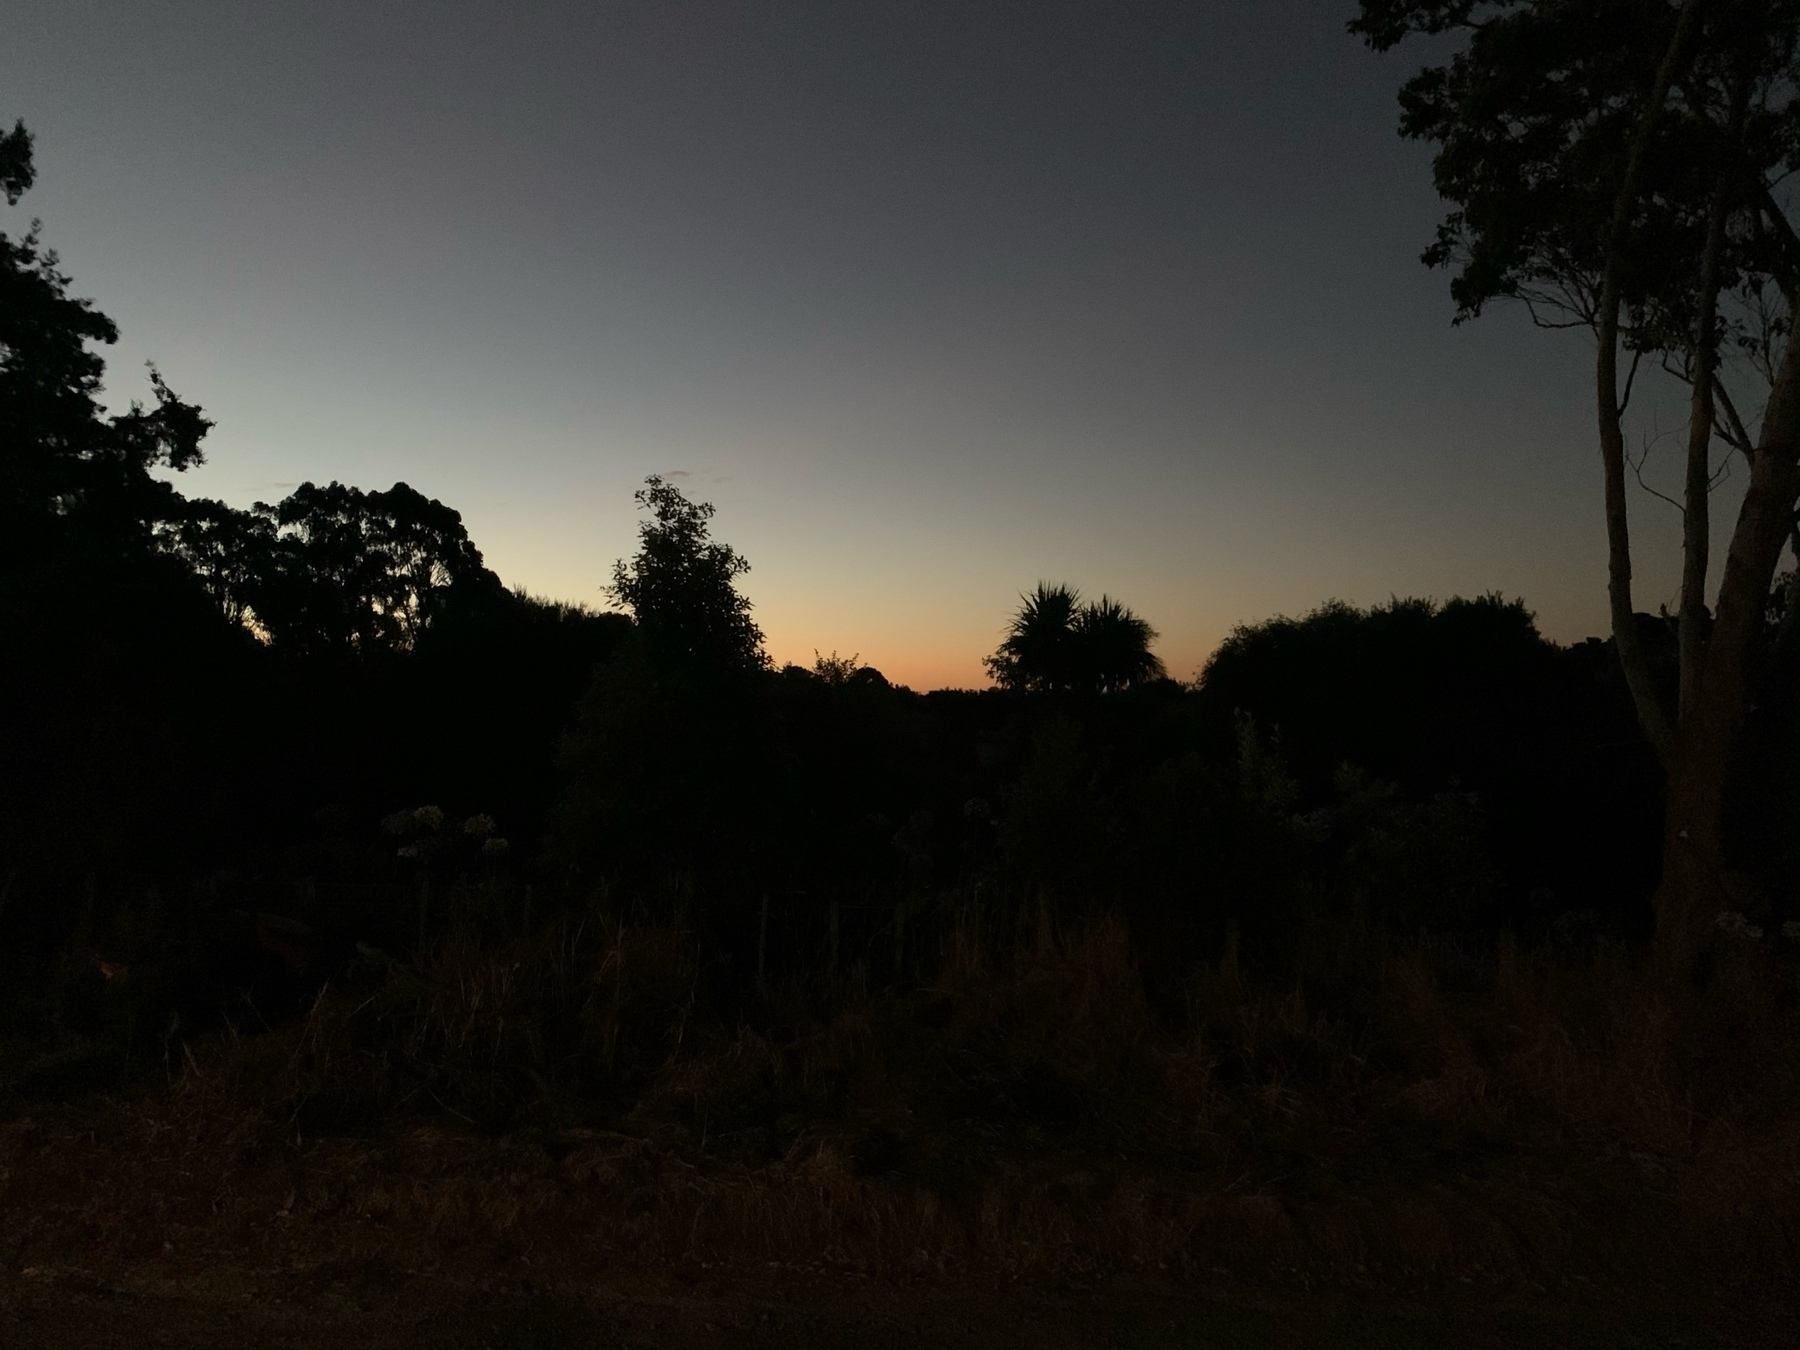 A dusk sky with trees masking the full coloured sky visible in the background